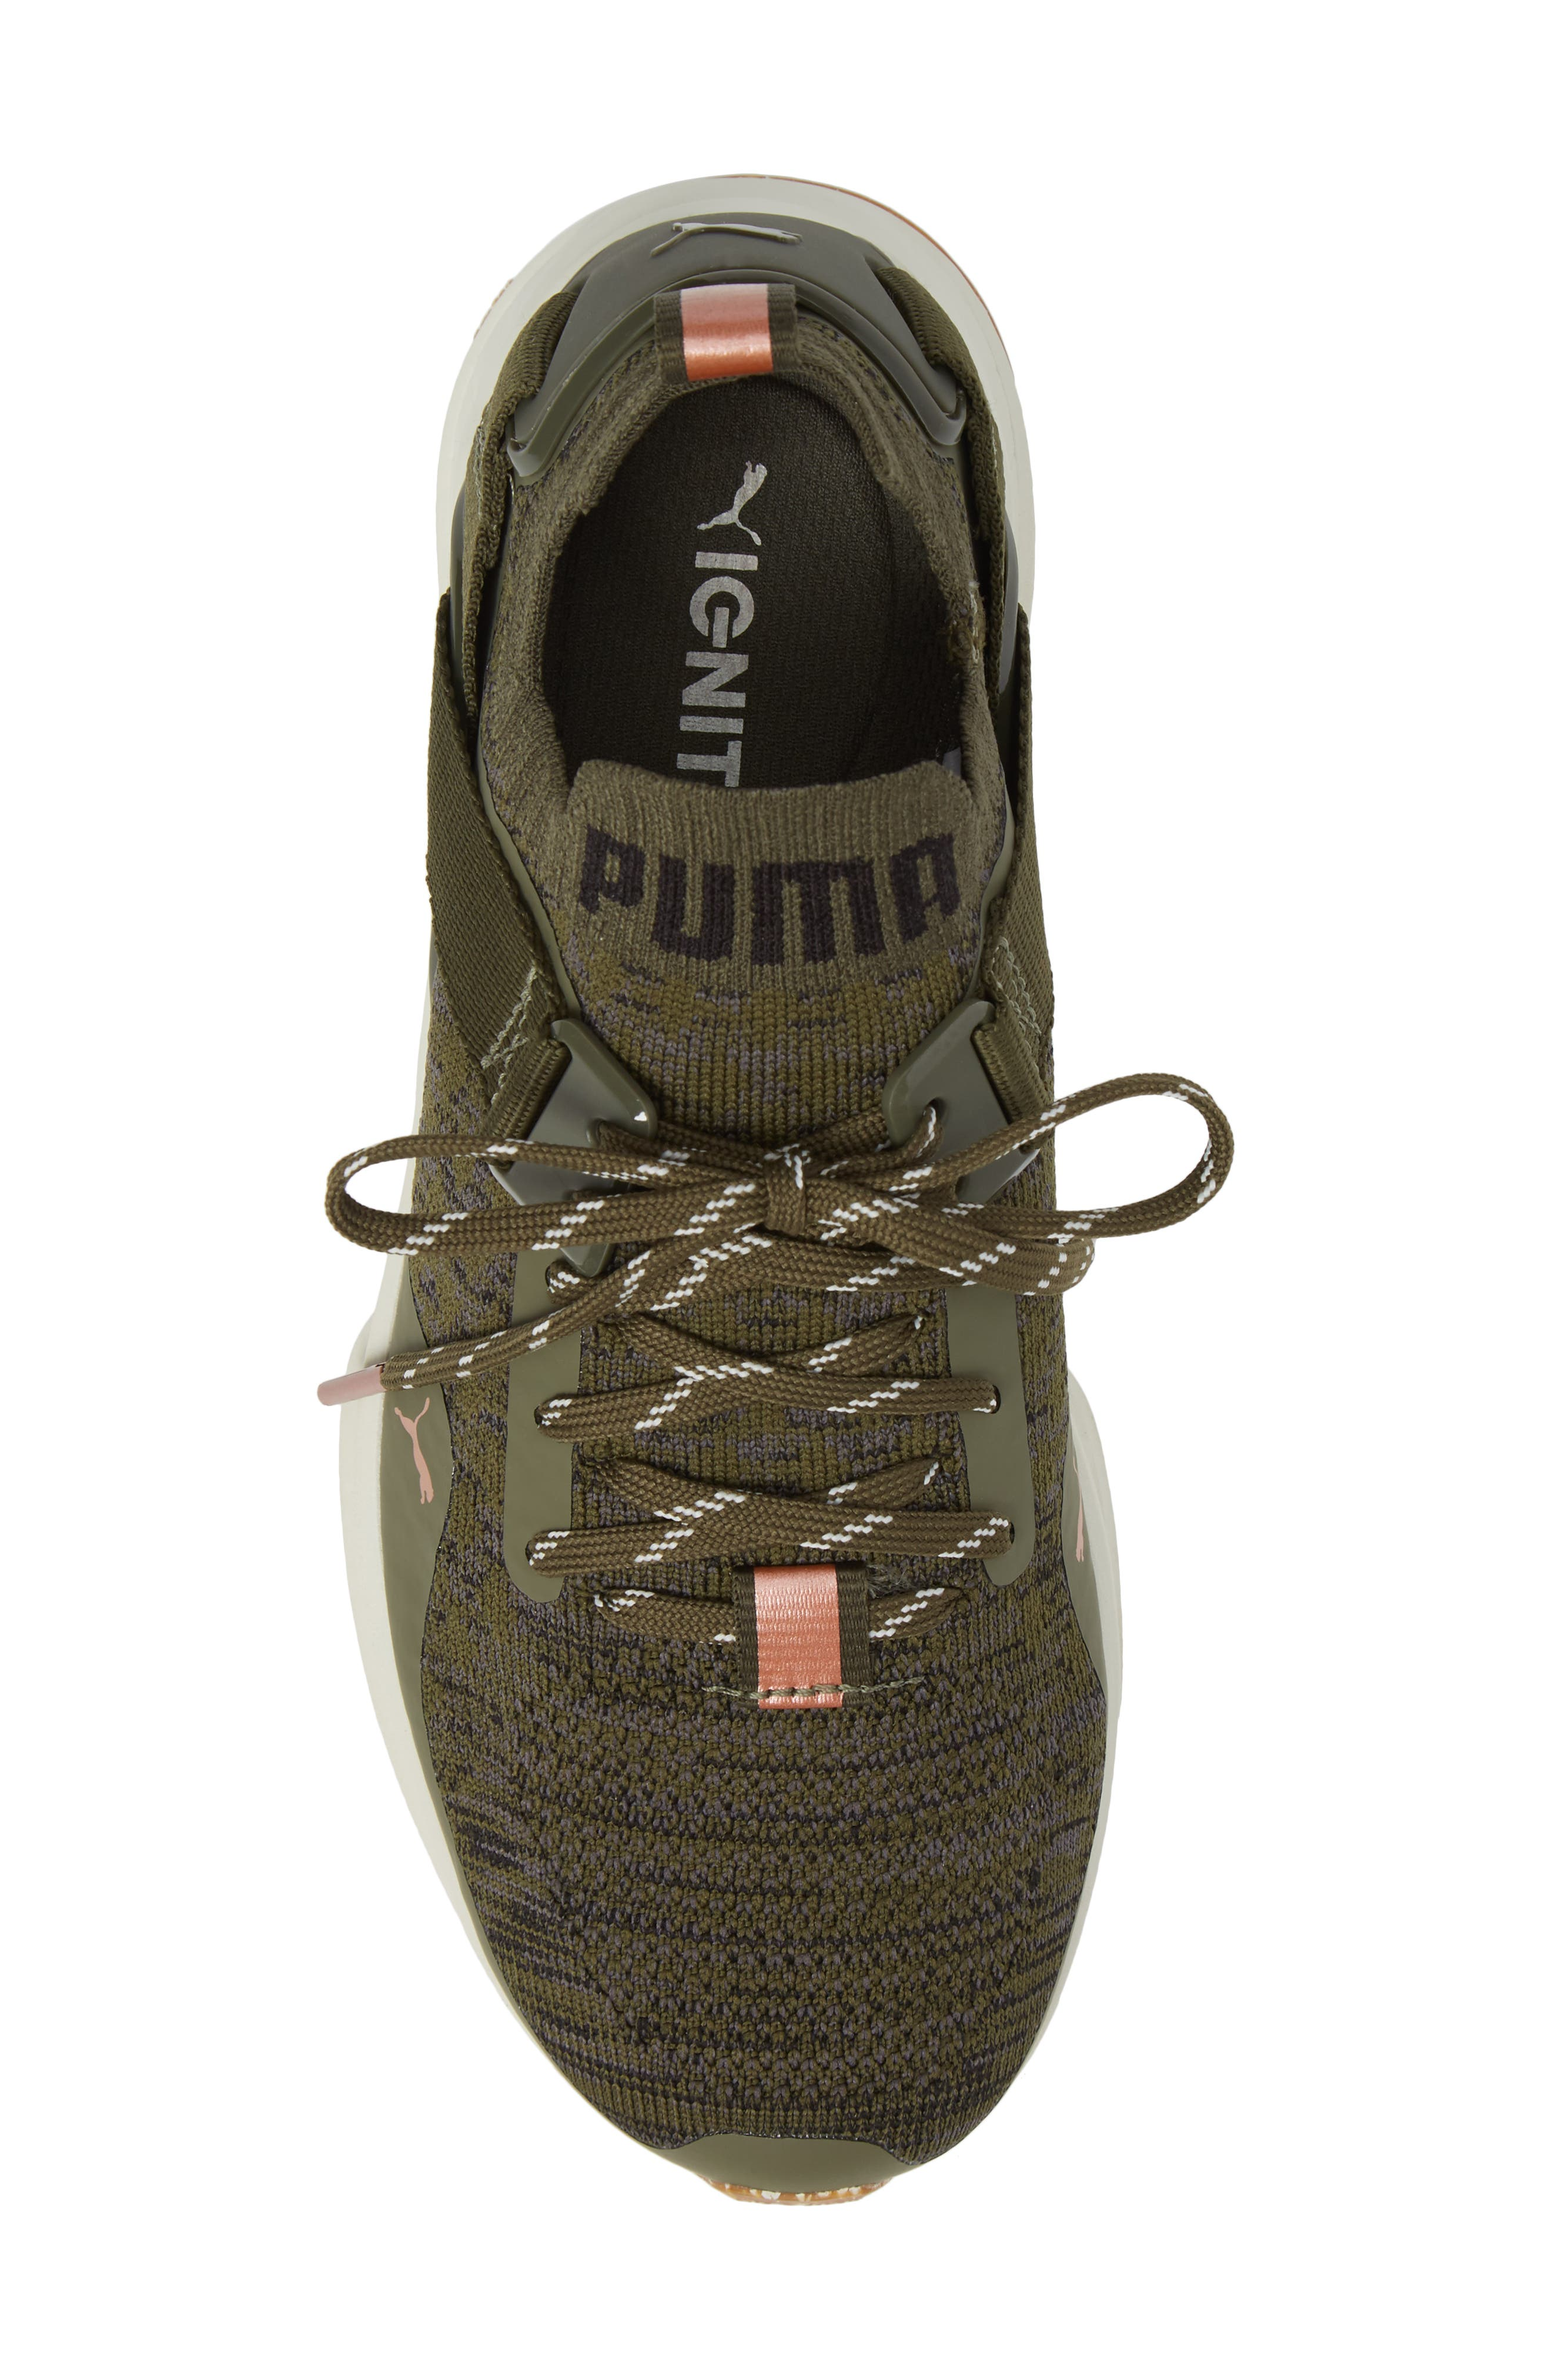 IGNITE evoKNIT Low Sneaker,                             Alternate thumbnail 5, color,                             Olive/ Black/ Quiet Shade